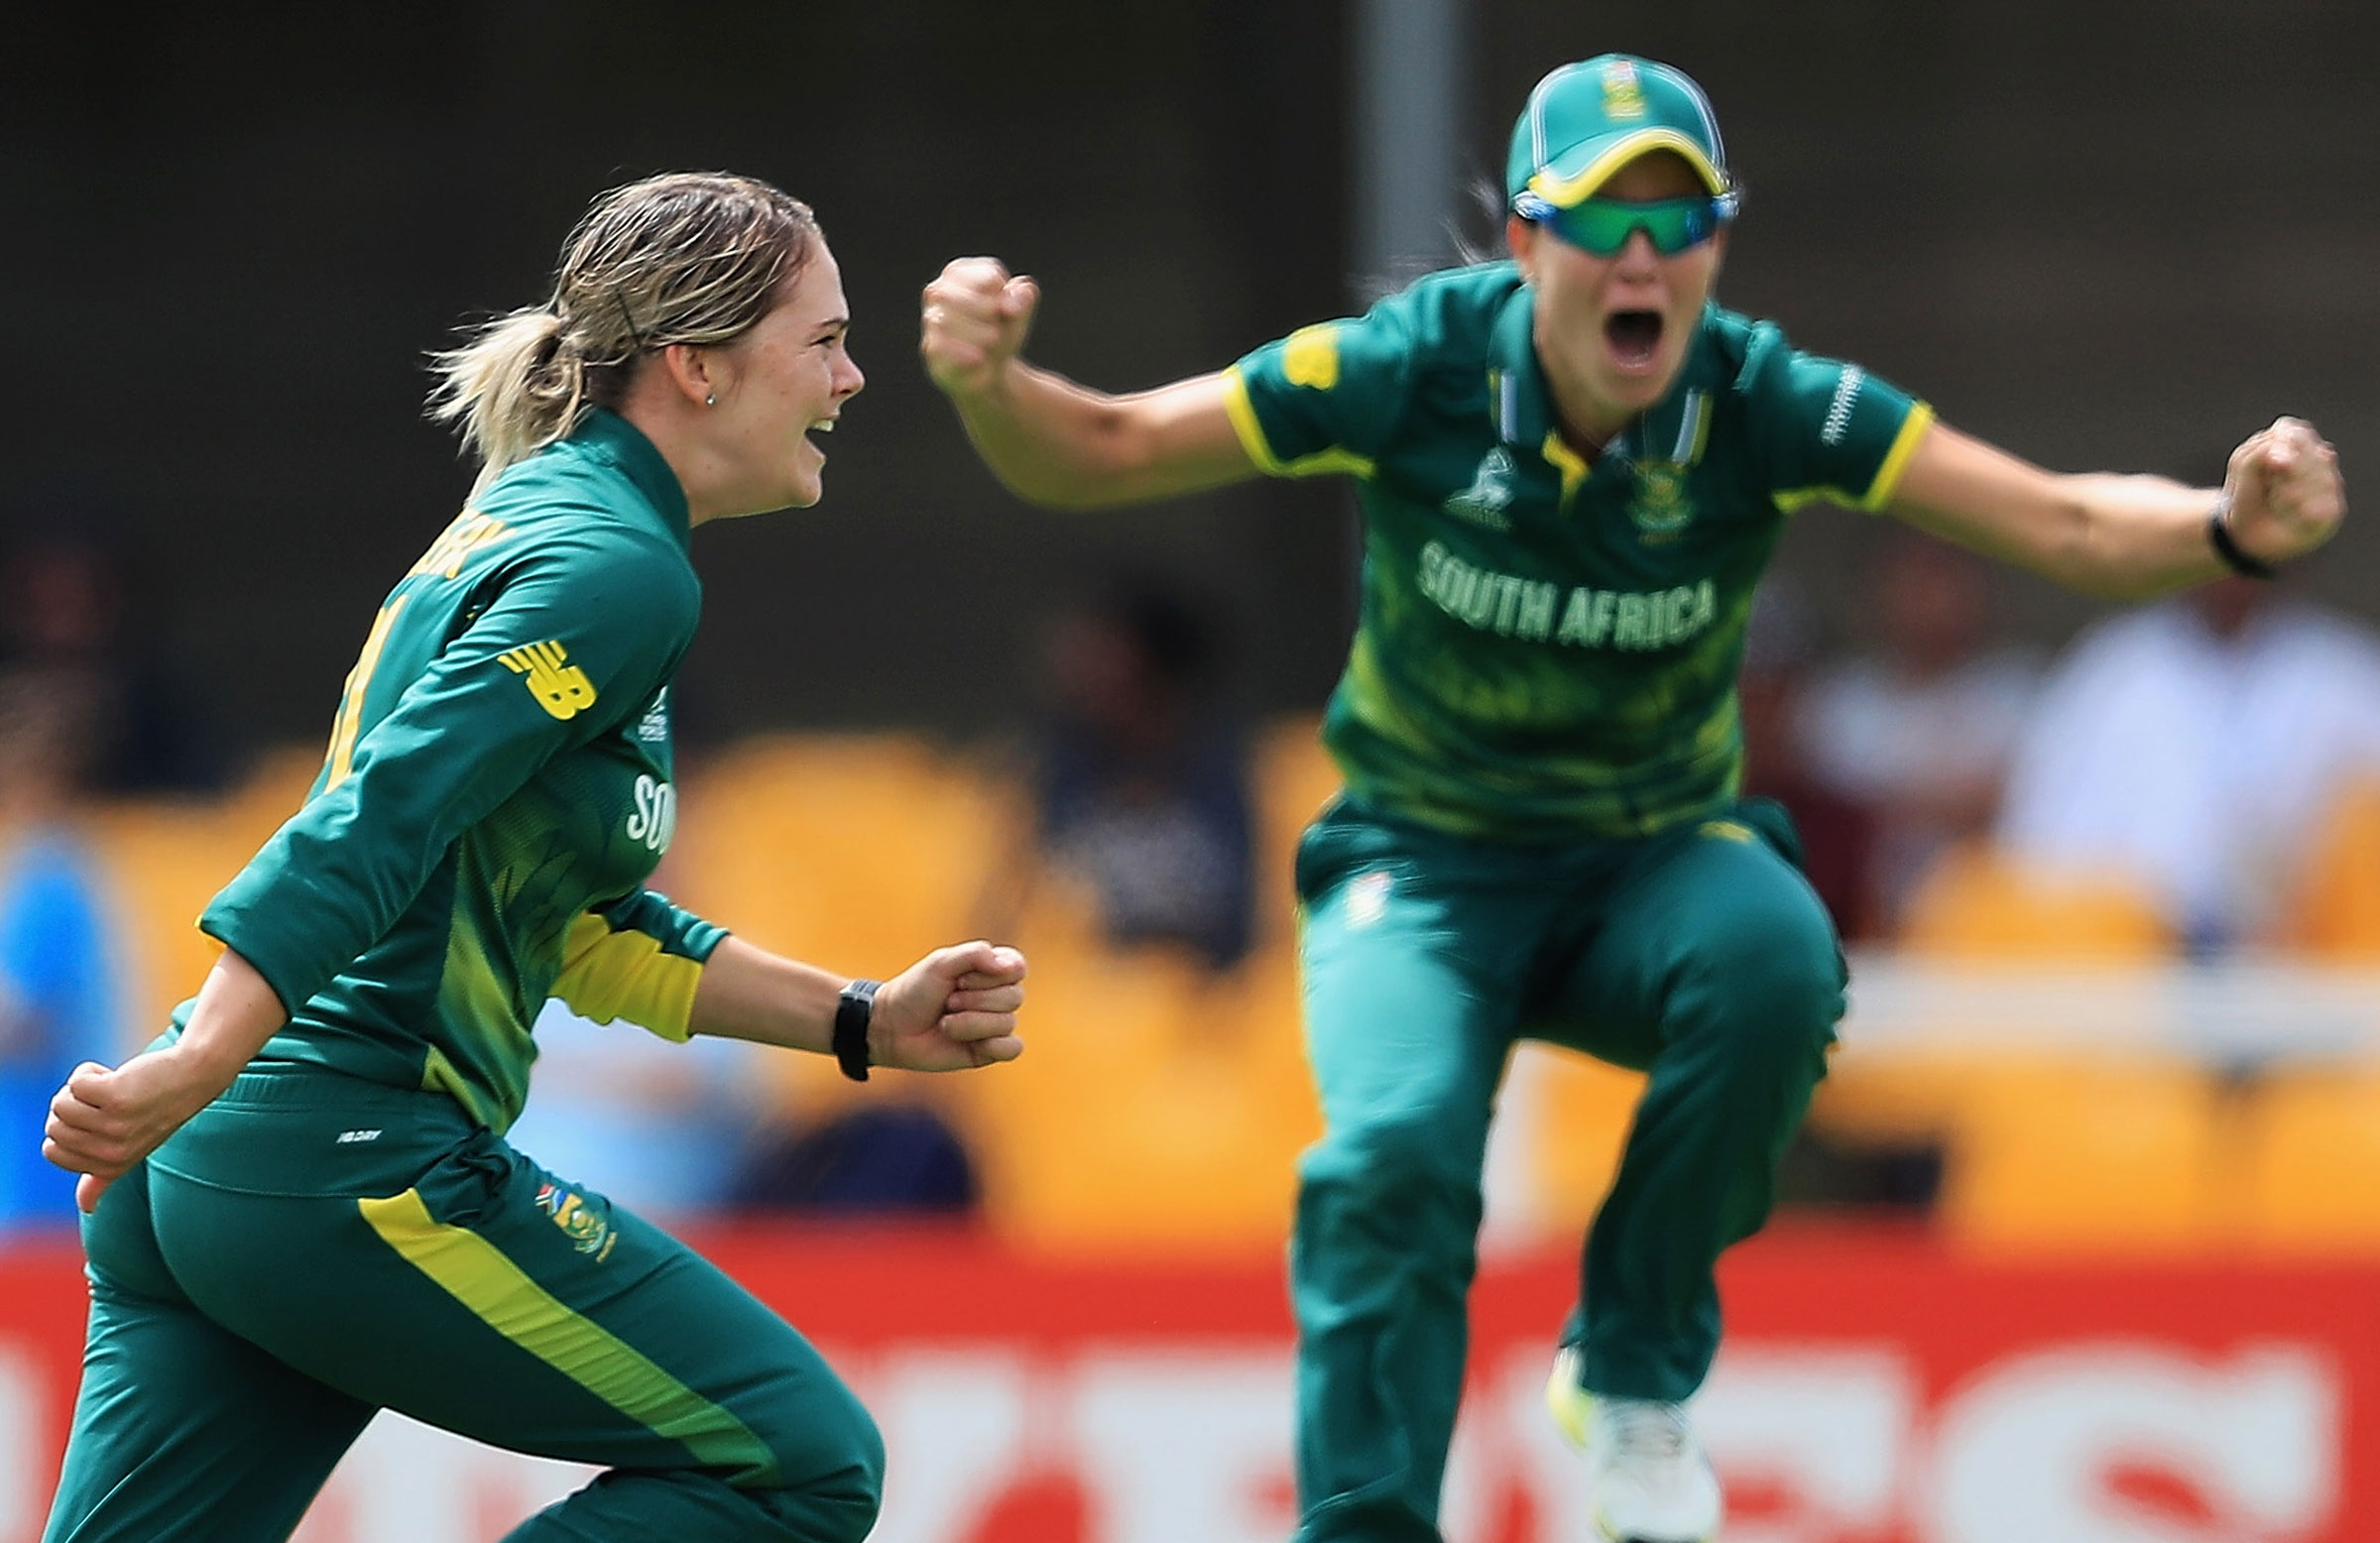 Dane van Niekerk and Marizanne Kapp will play for the ACT // Getty